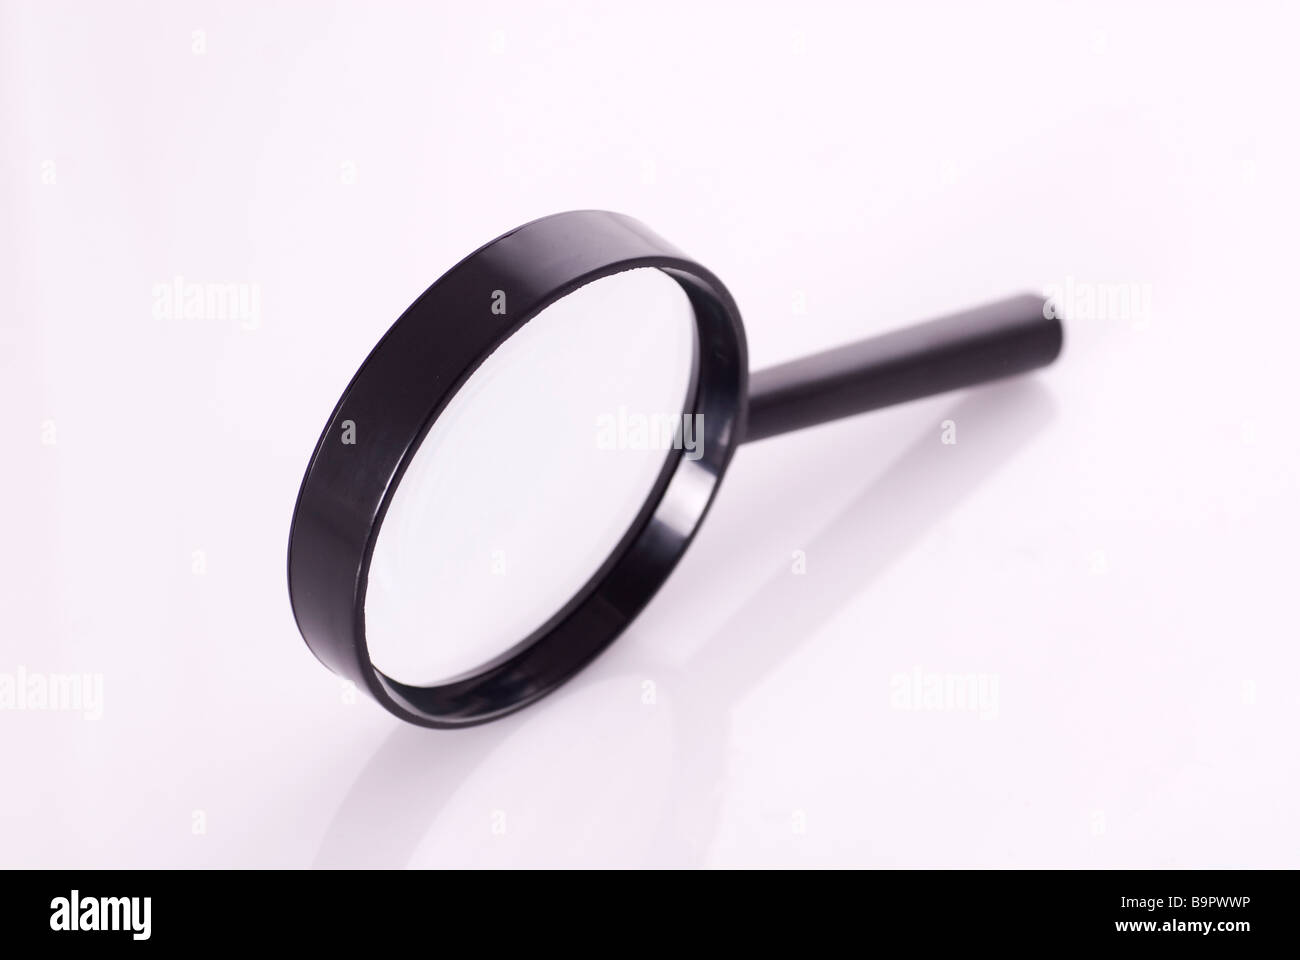 Magnifying glass isolated on a white background - Stock Image